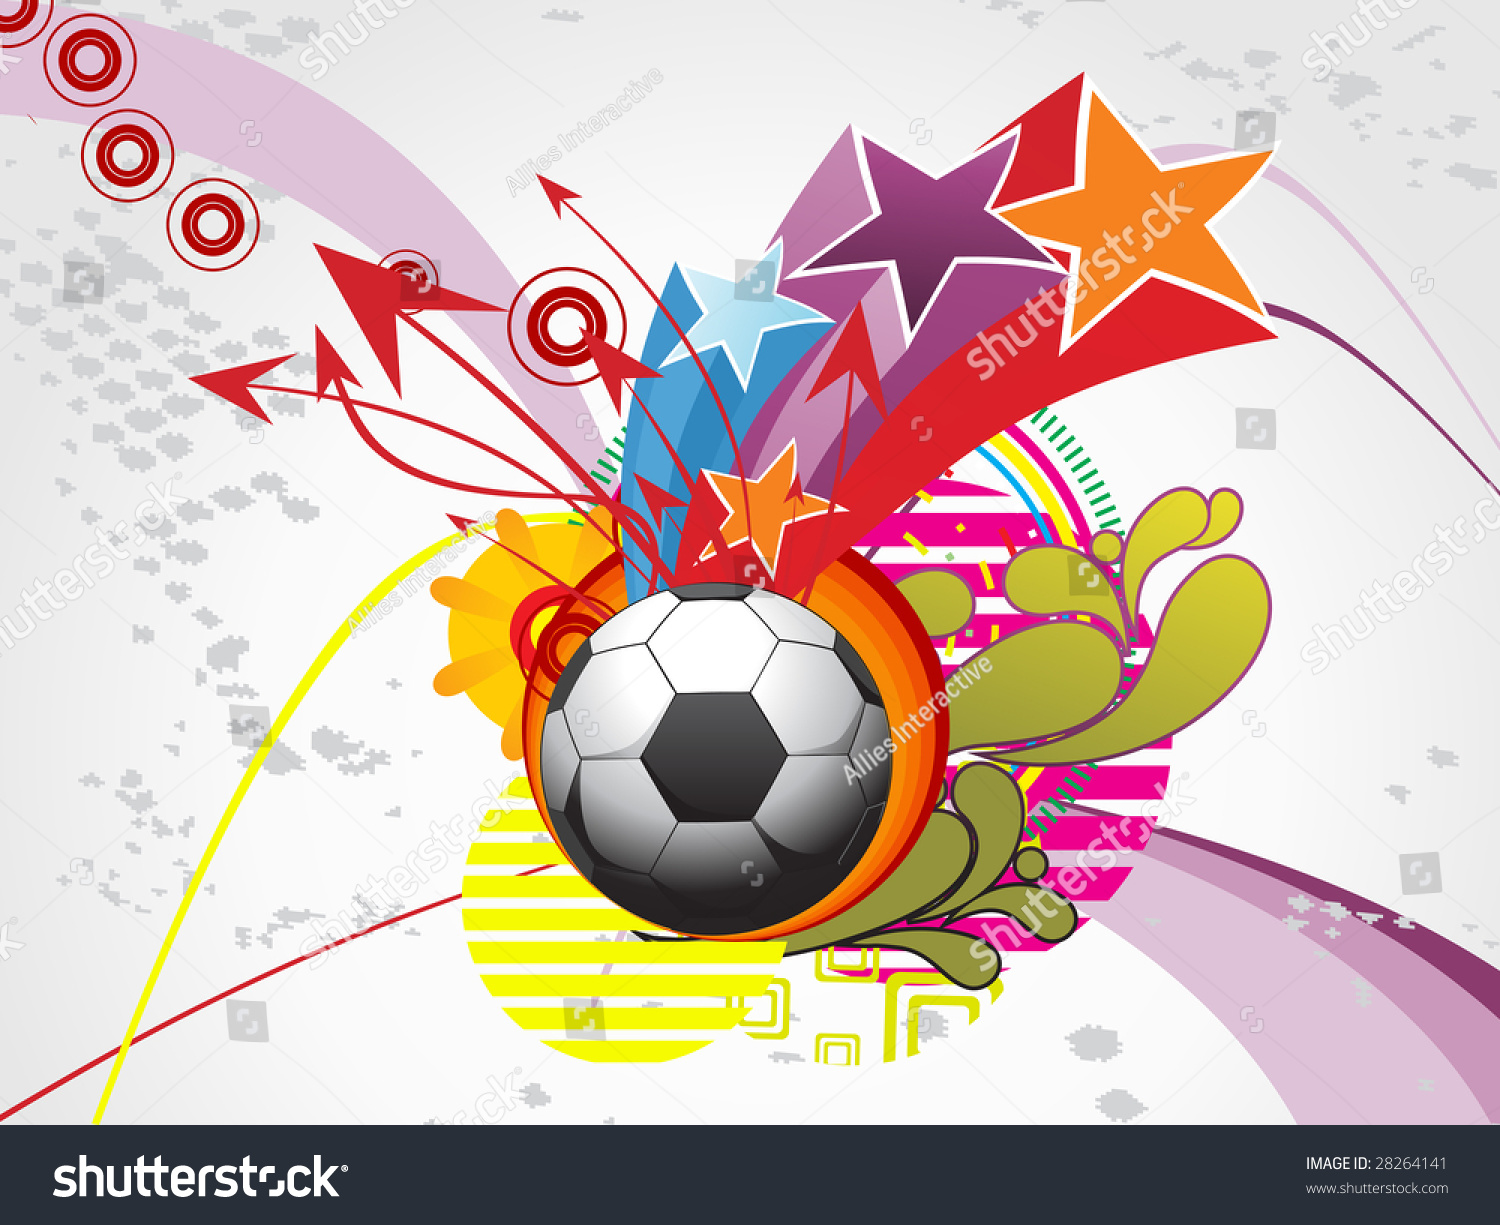 Abstract Grungy Background Volleyball Arrowhead Stock: Abstract Artistic, Funky Background With Football And